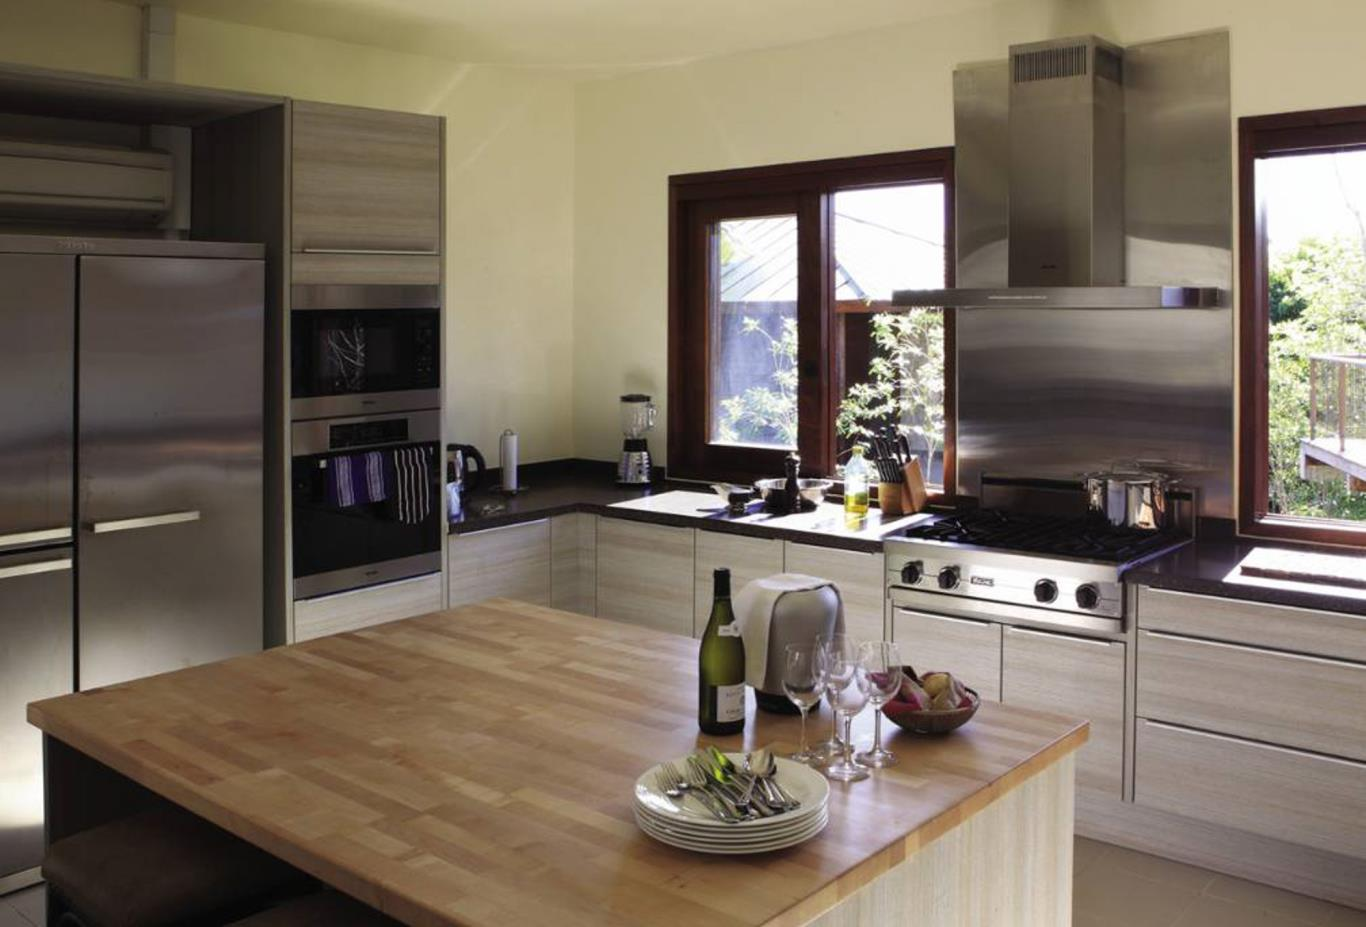 3 Bed Residence kitchen